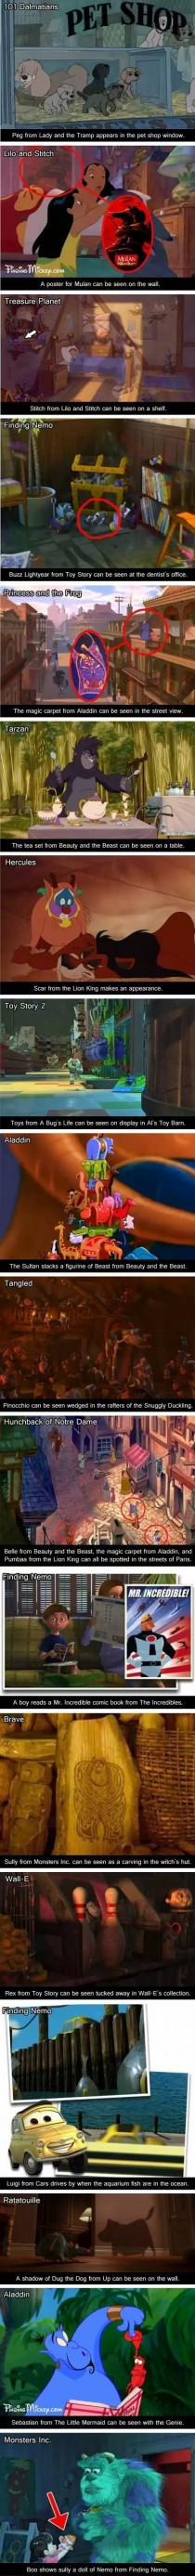 Disney Movies Inside Other Disney Movies